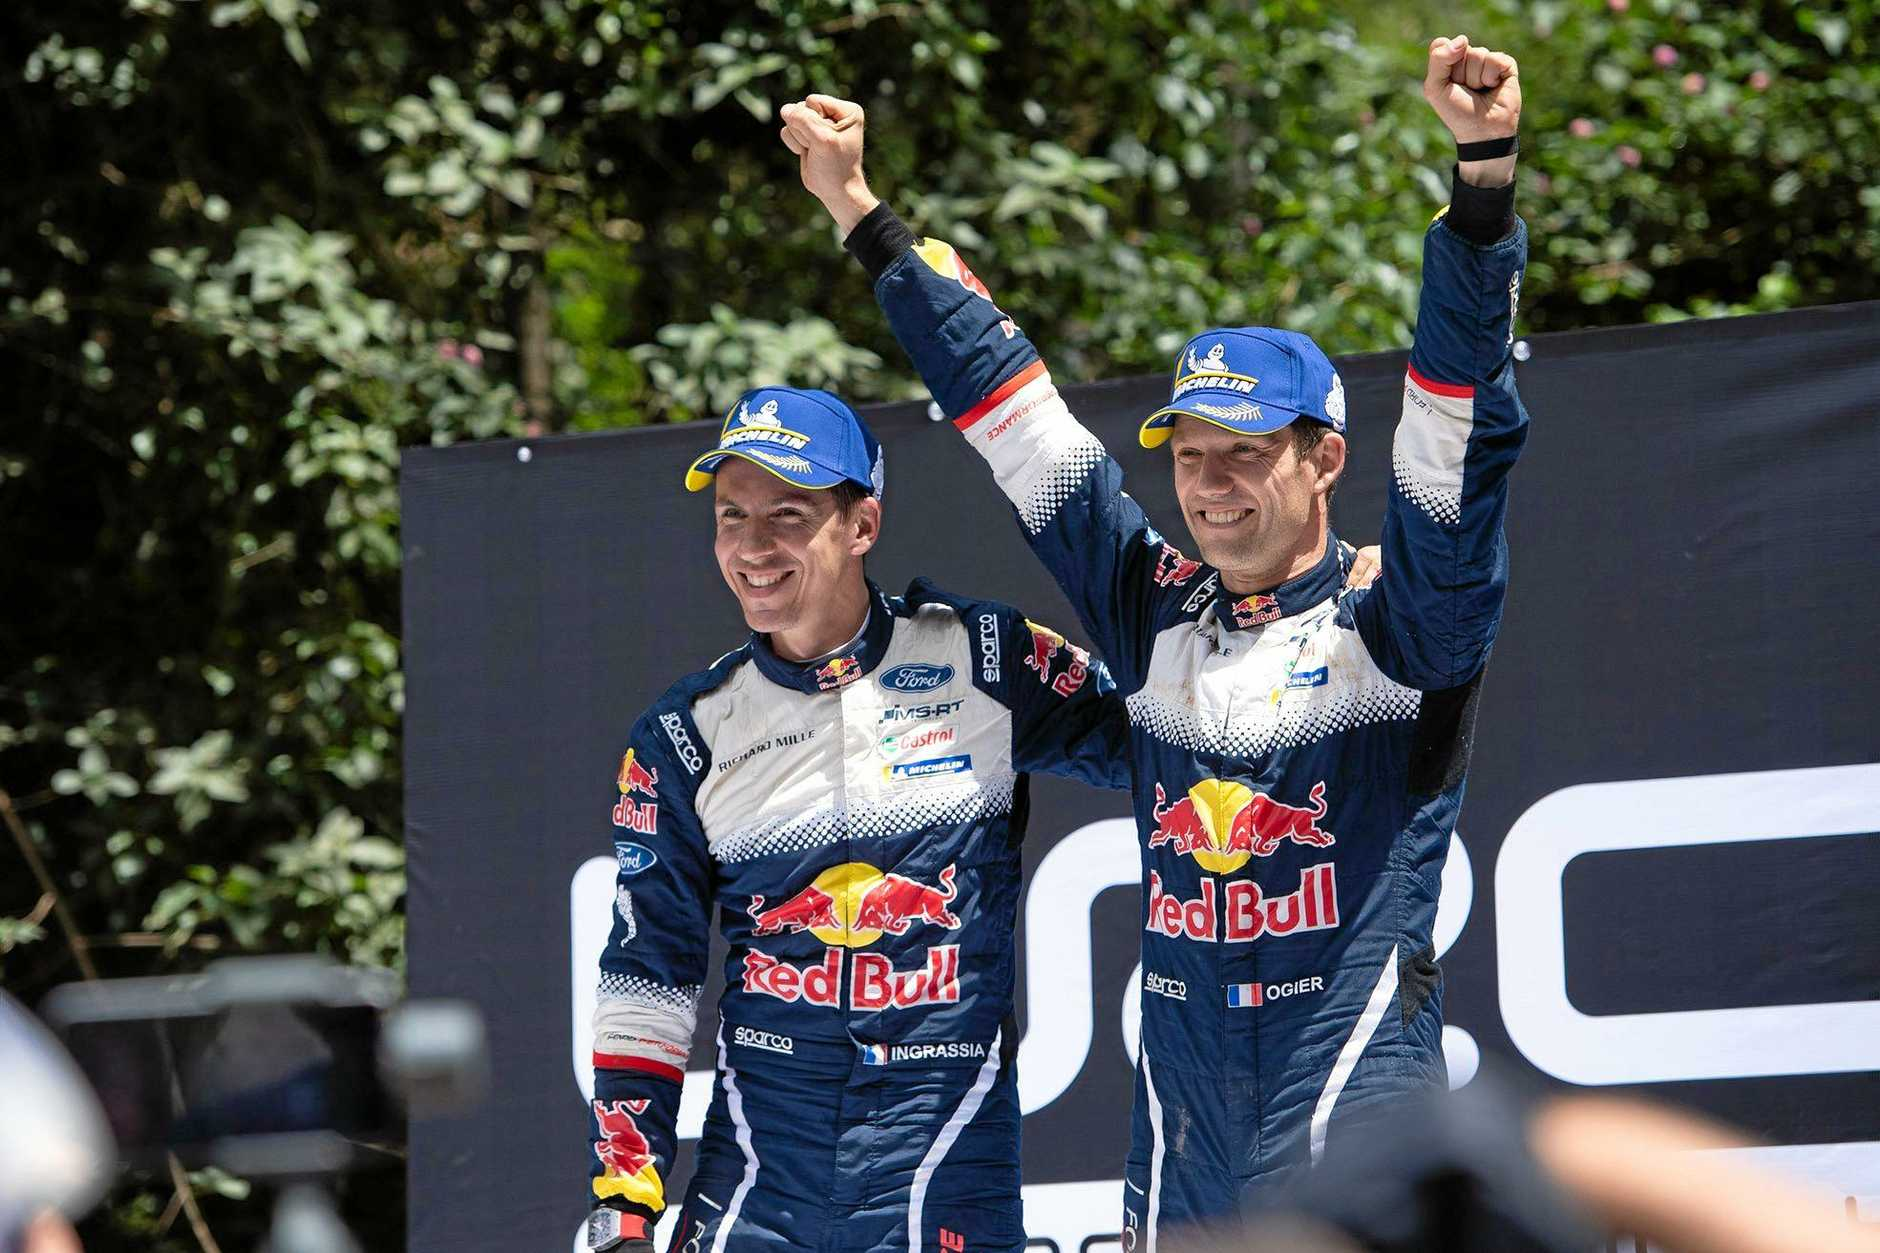 COMING BACK: 2018 World Champion Sebastien Ogier and his co-driver Julien Ingrassia celebrate on the podium. The rally is returning to the Nambucca Shire in 2019.